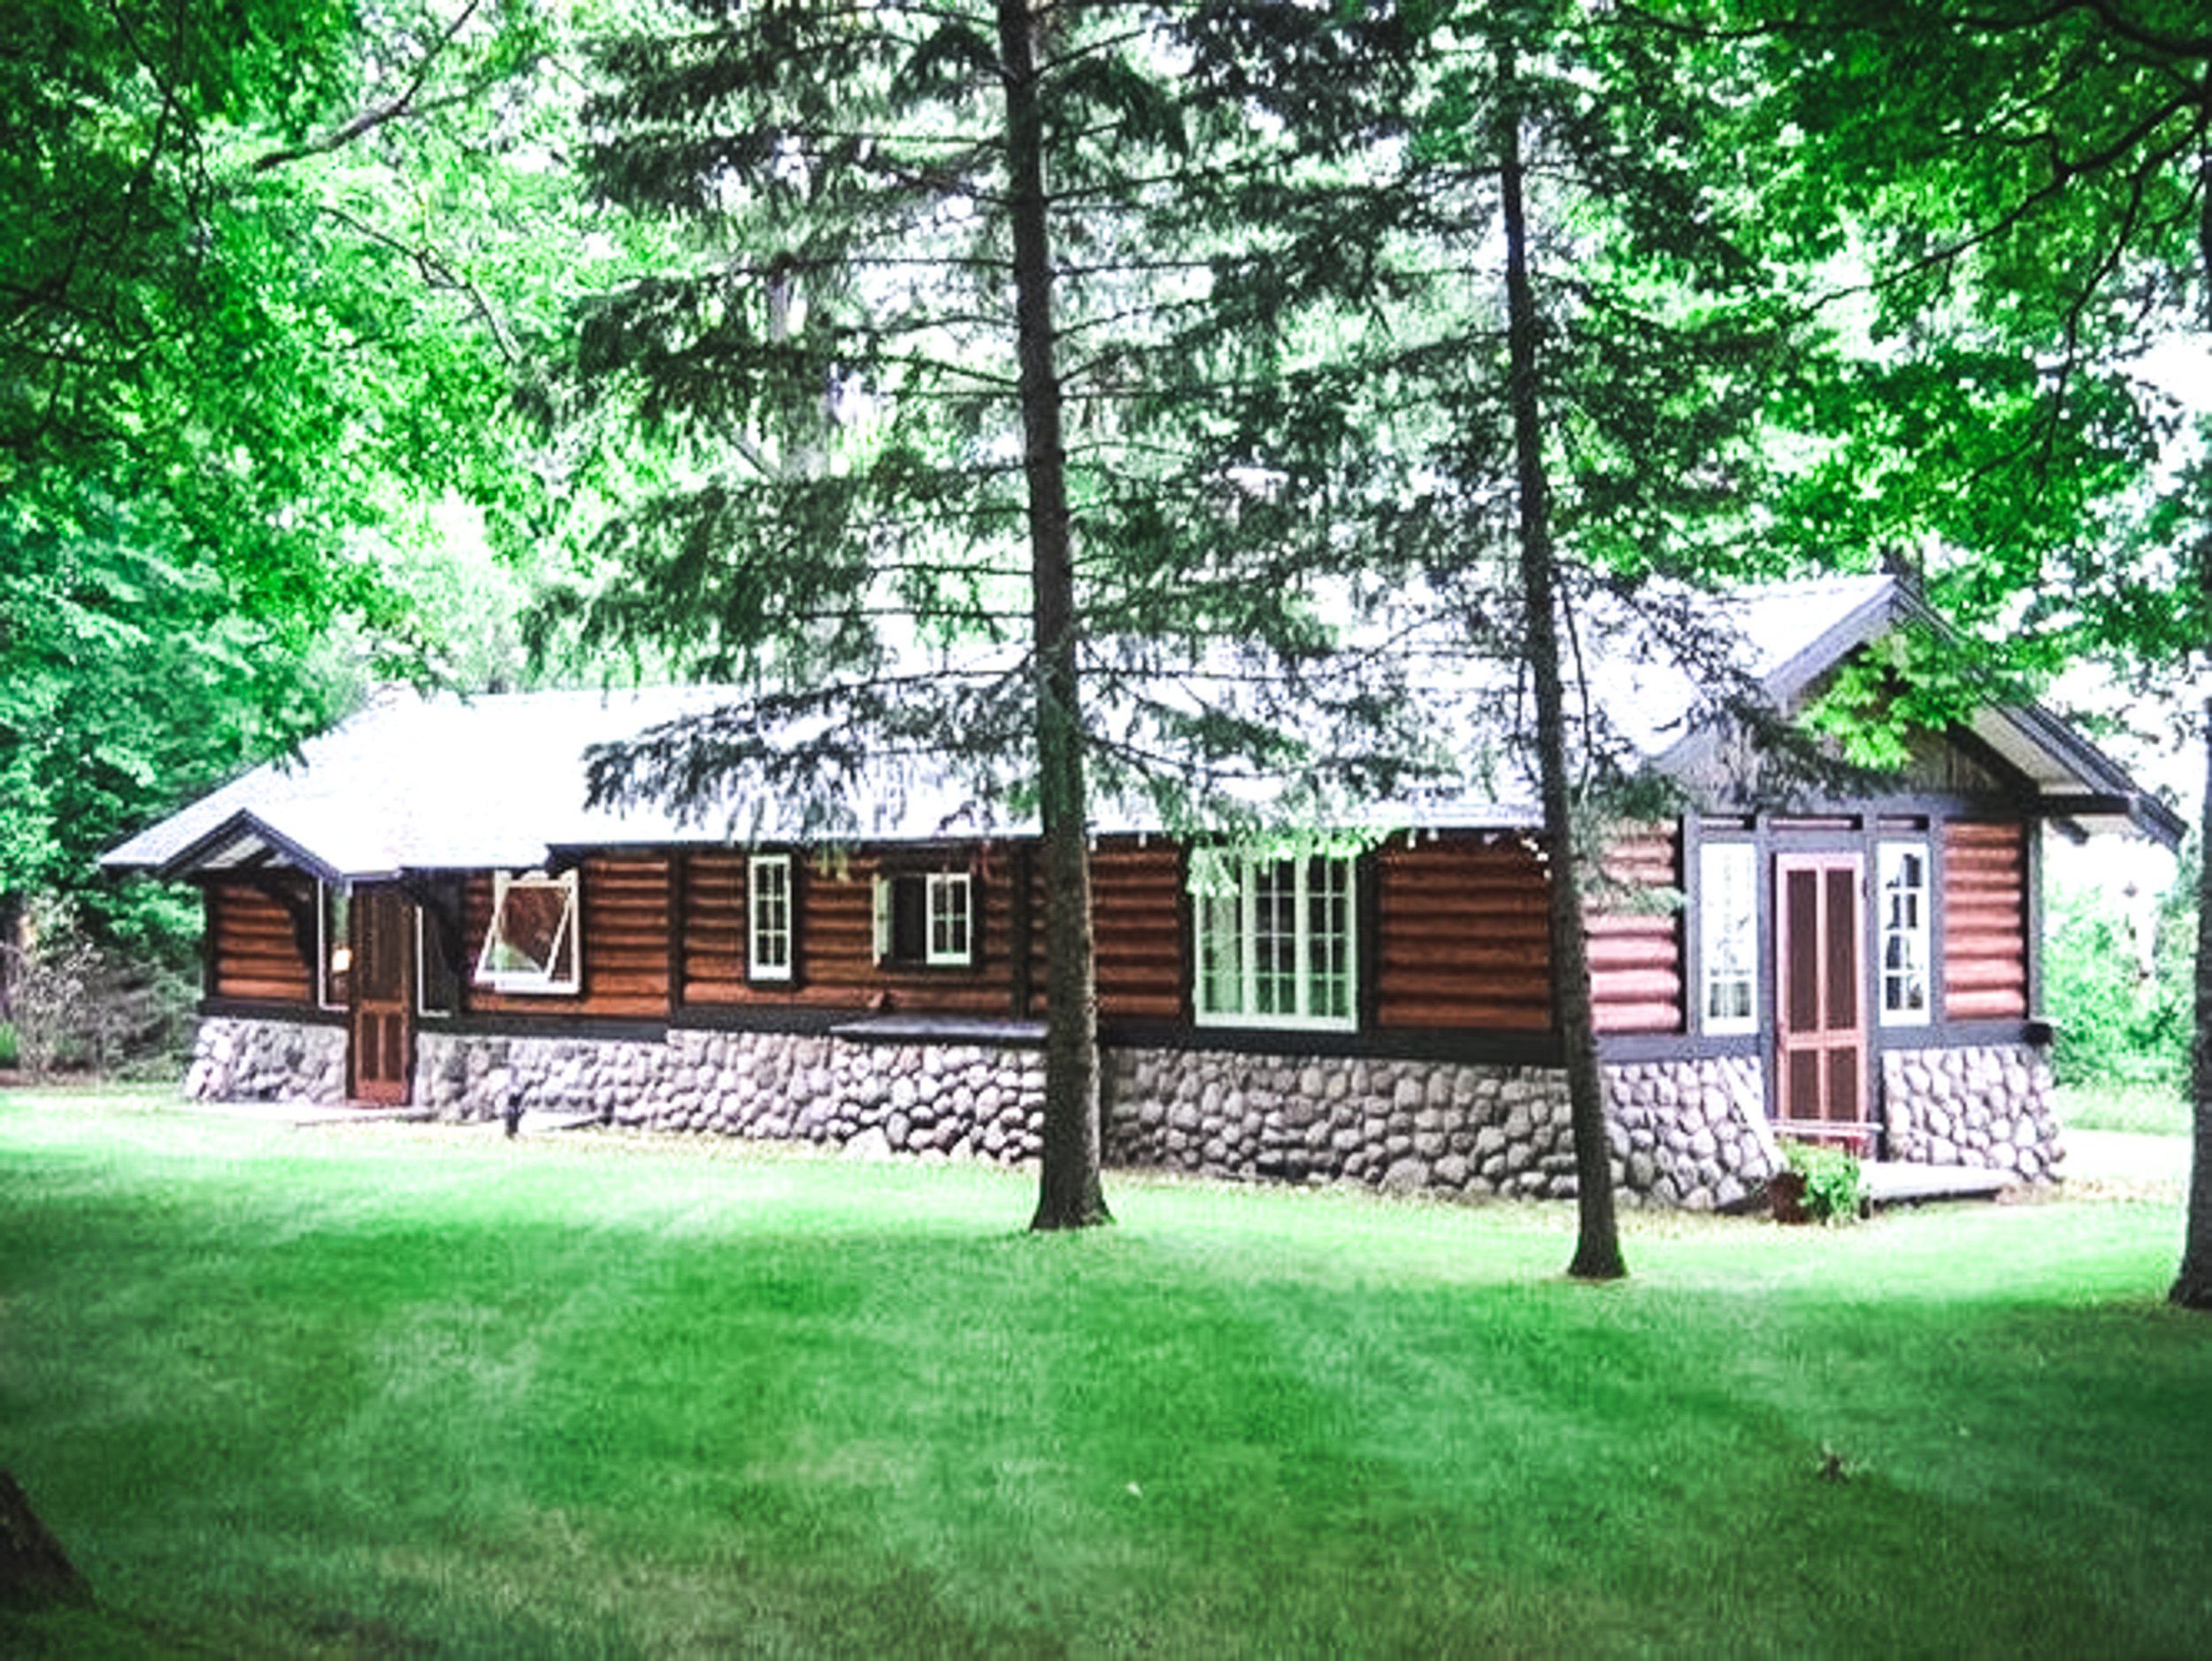 mls-449258-2841-n-lake-shore-drive-harbor-springs-mi-49740.15.jpg